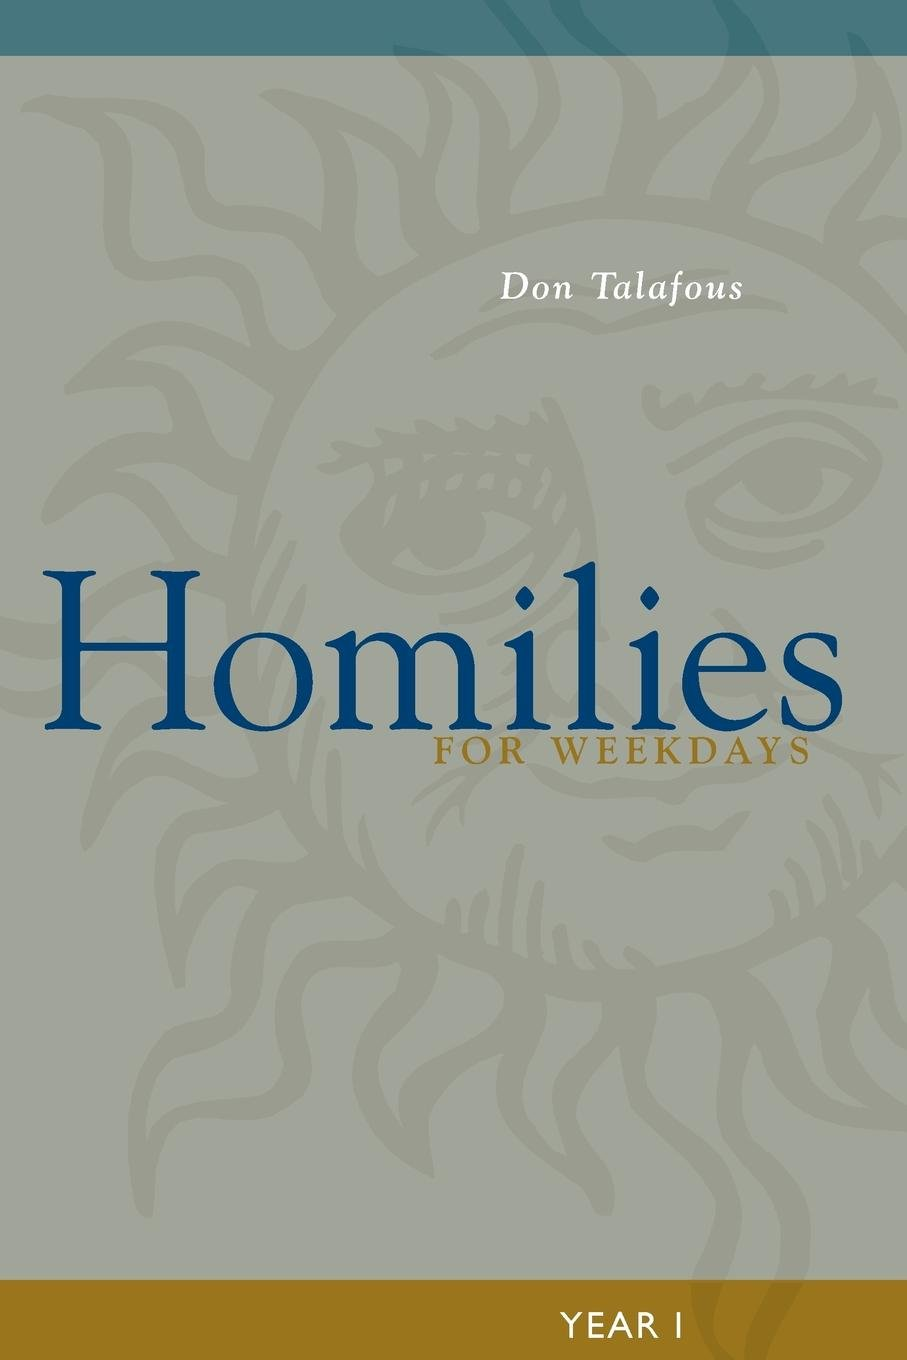 Homilies for Weekdays: Year 1